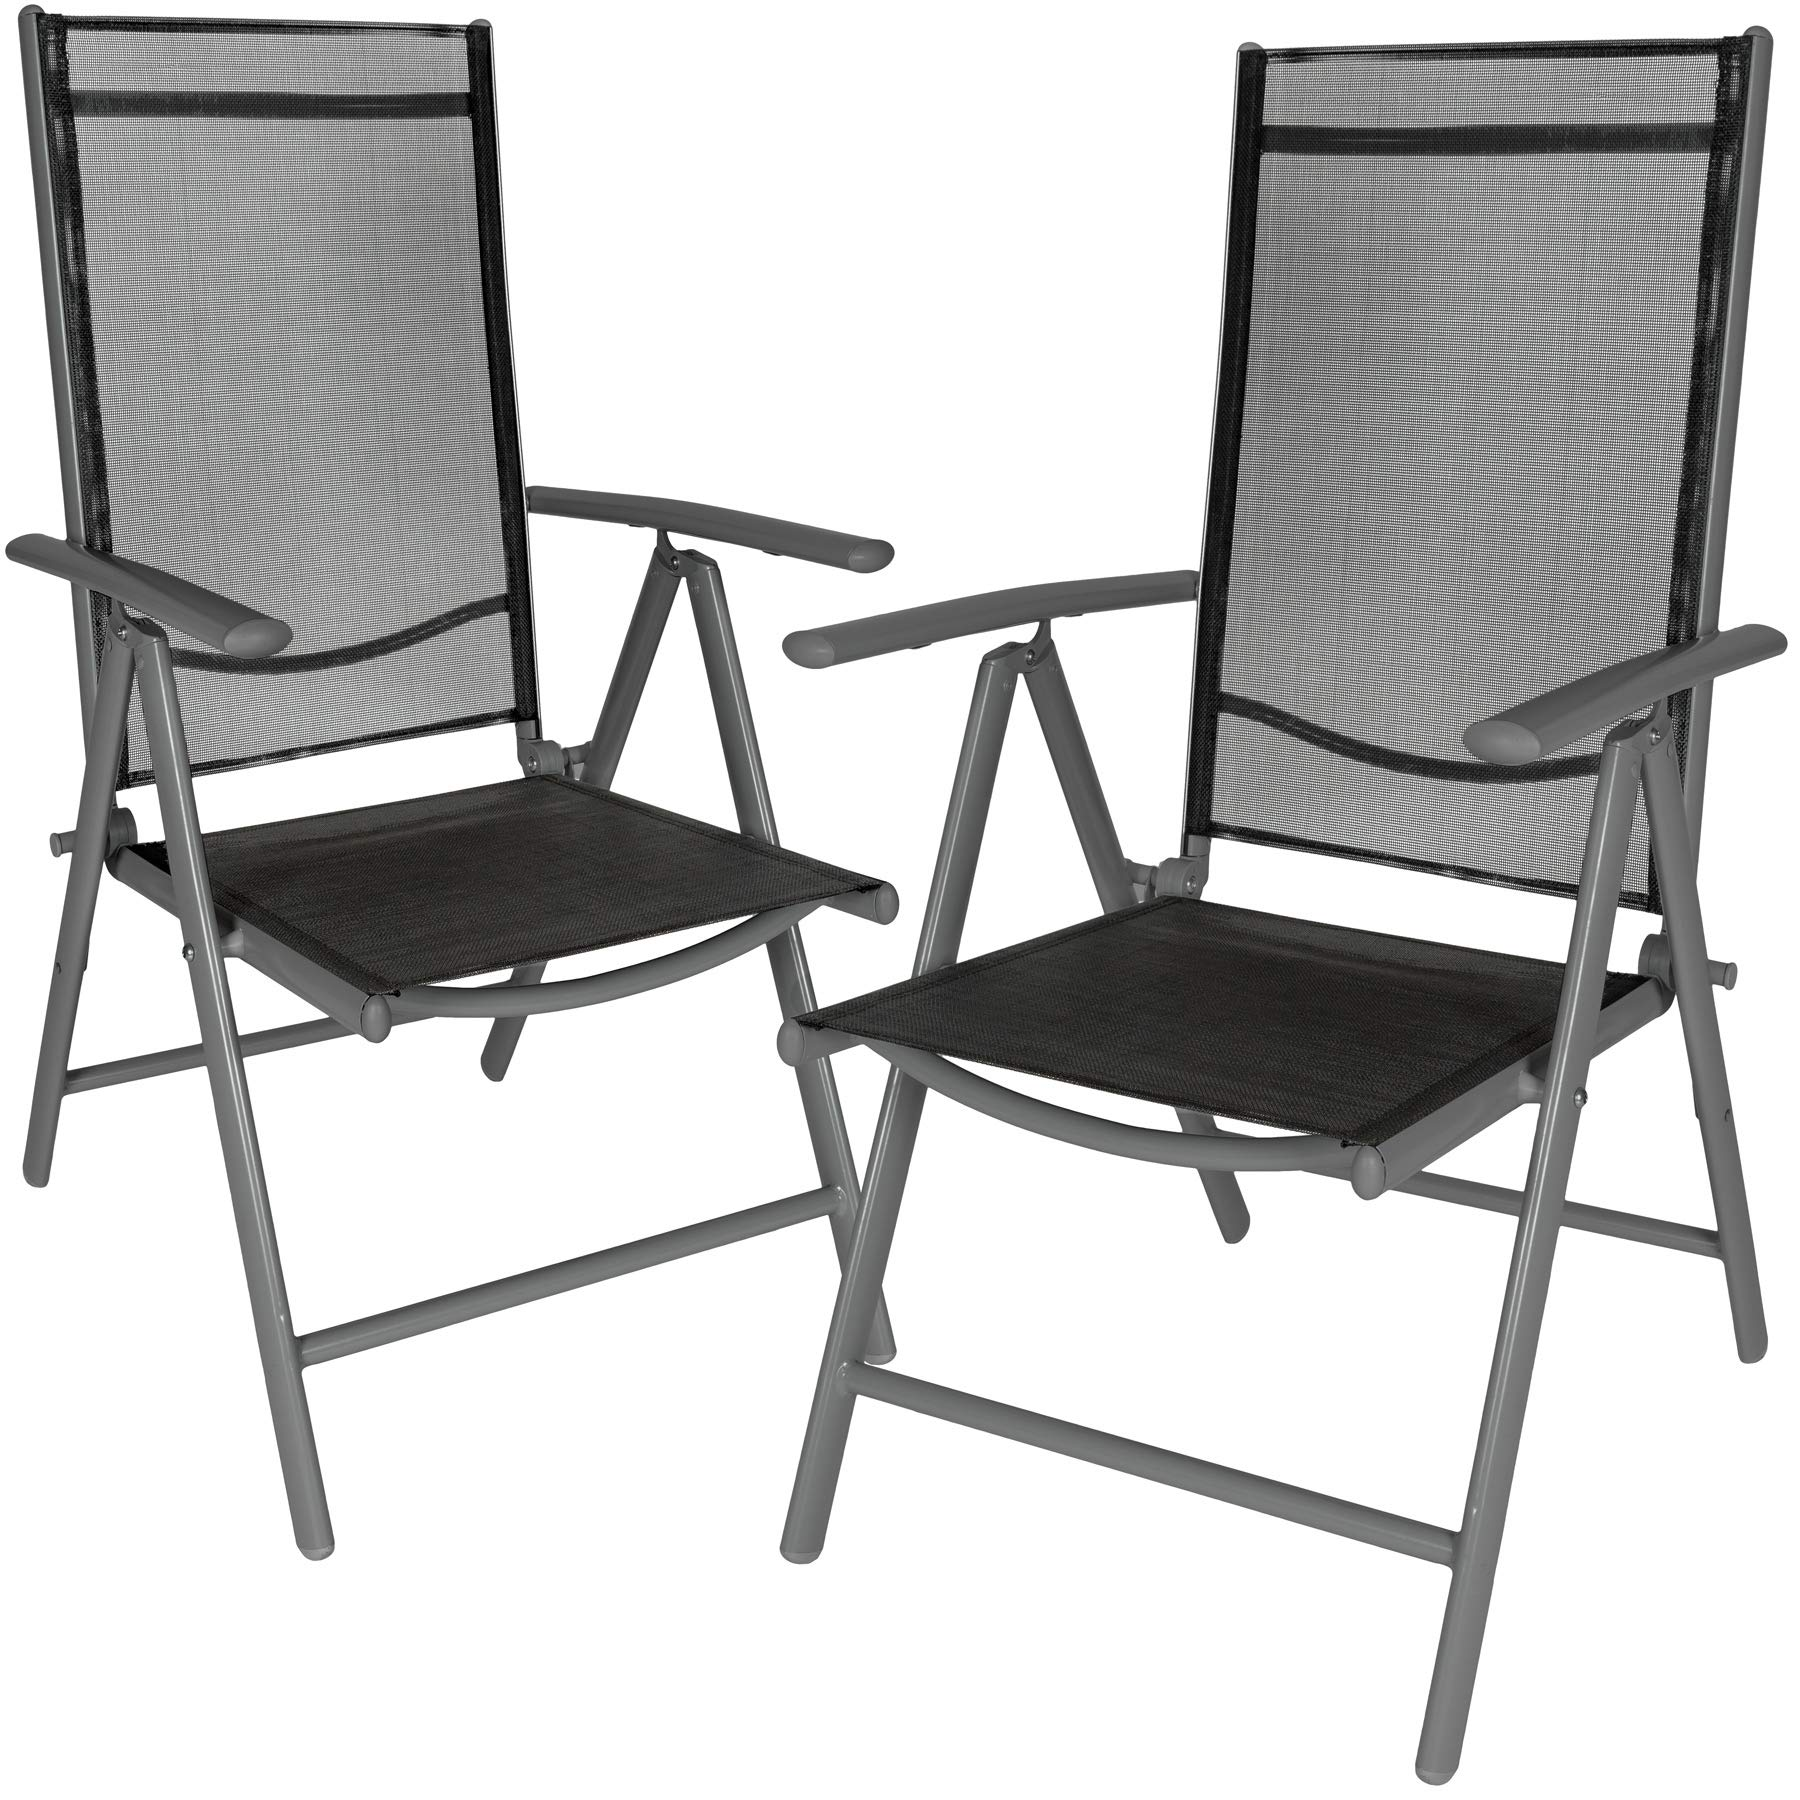 TecTake Aluminium folding garden chairs set adjustable with armrests